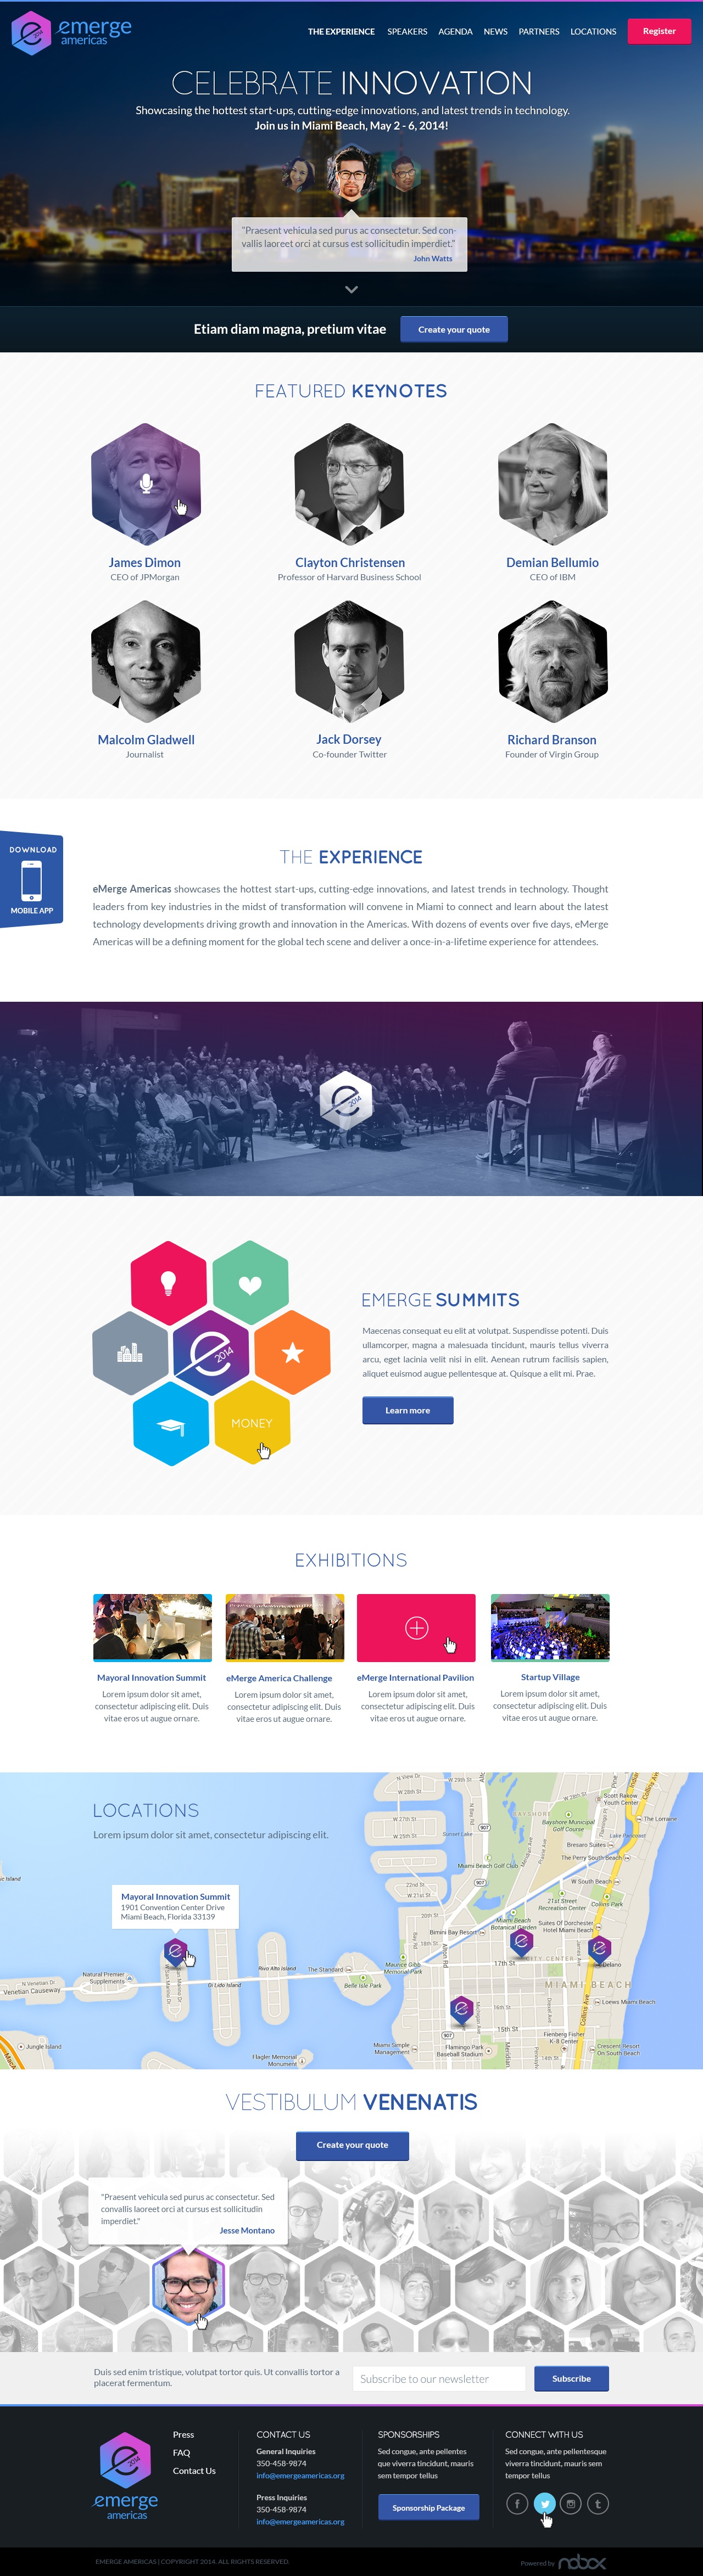 01 emerge microsite home